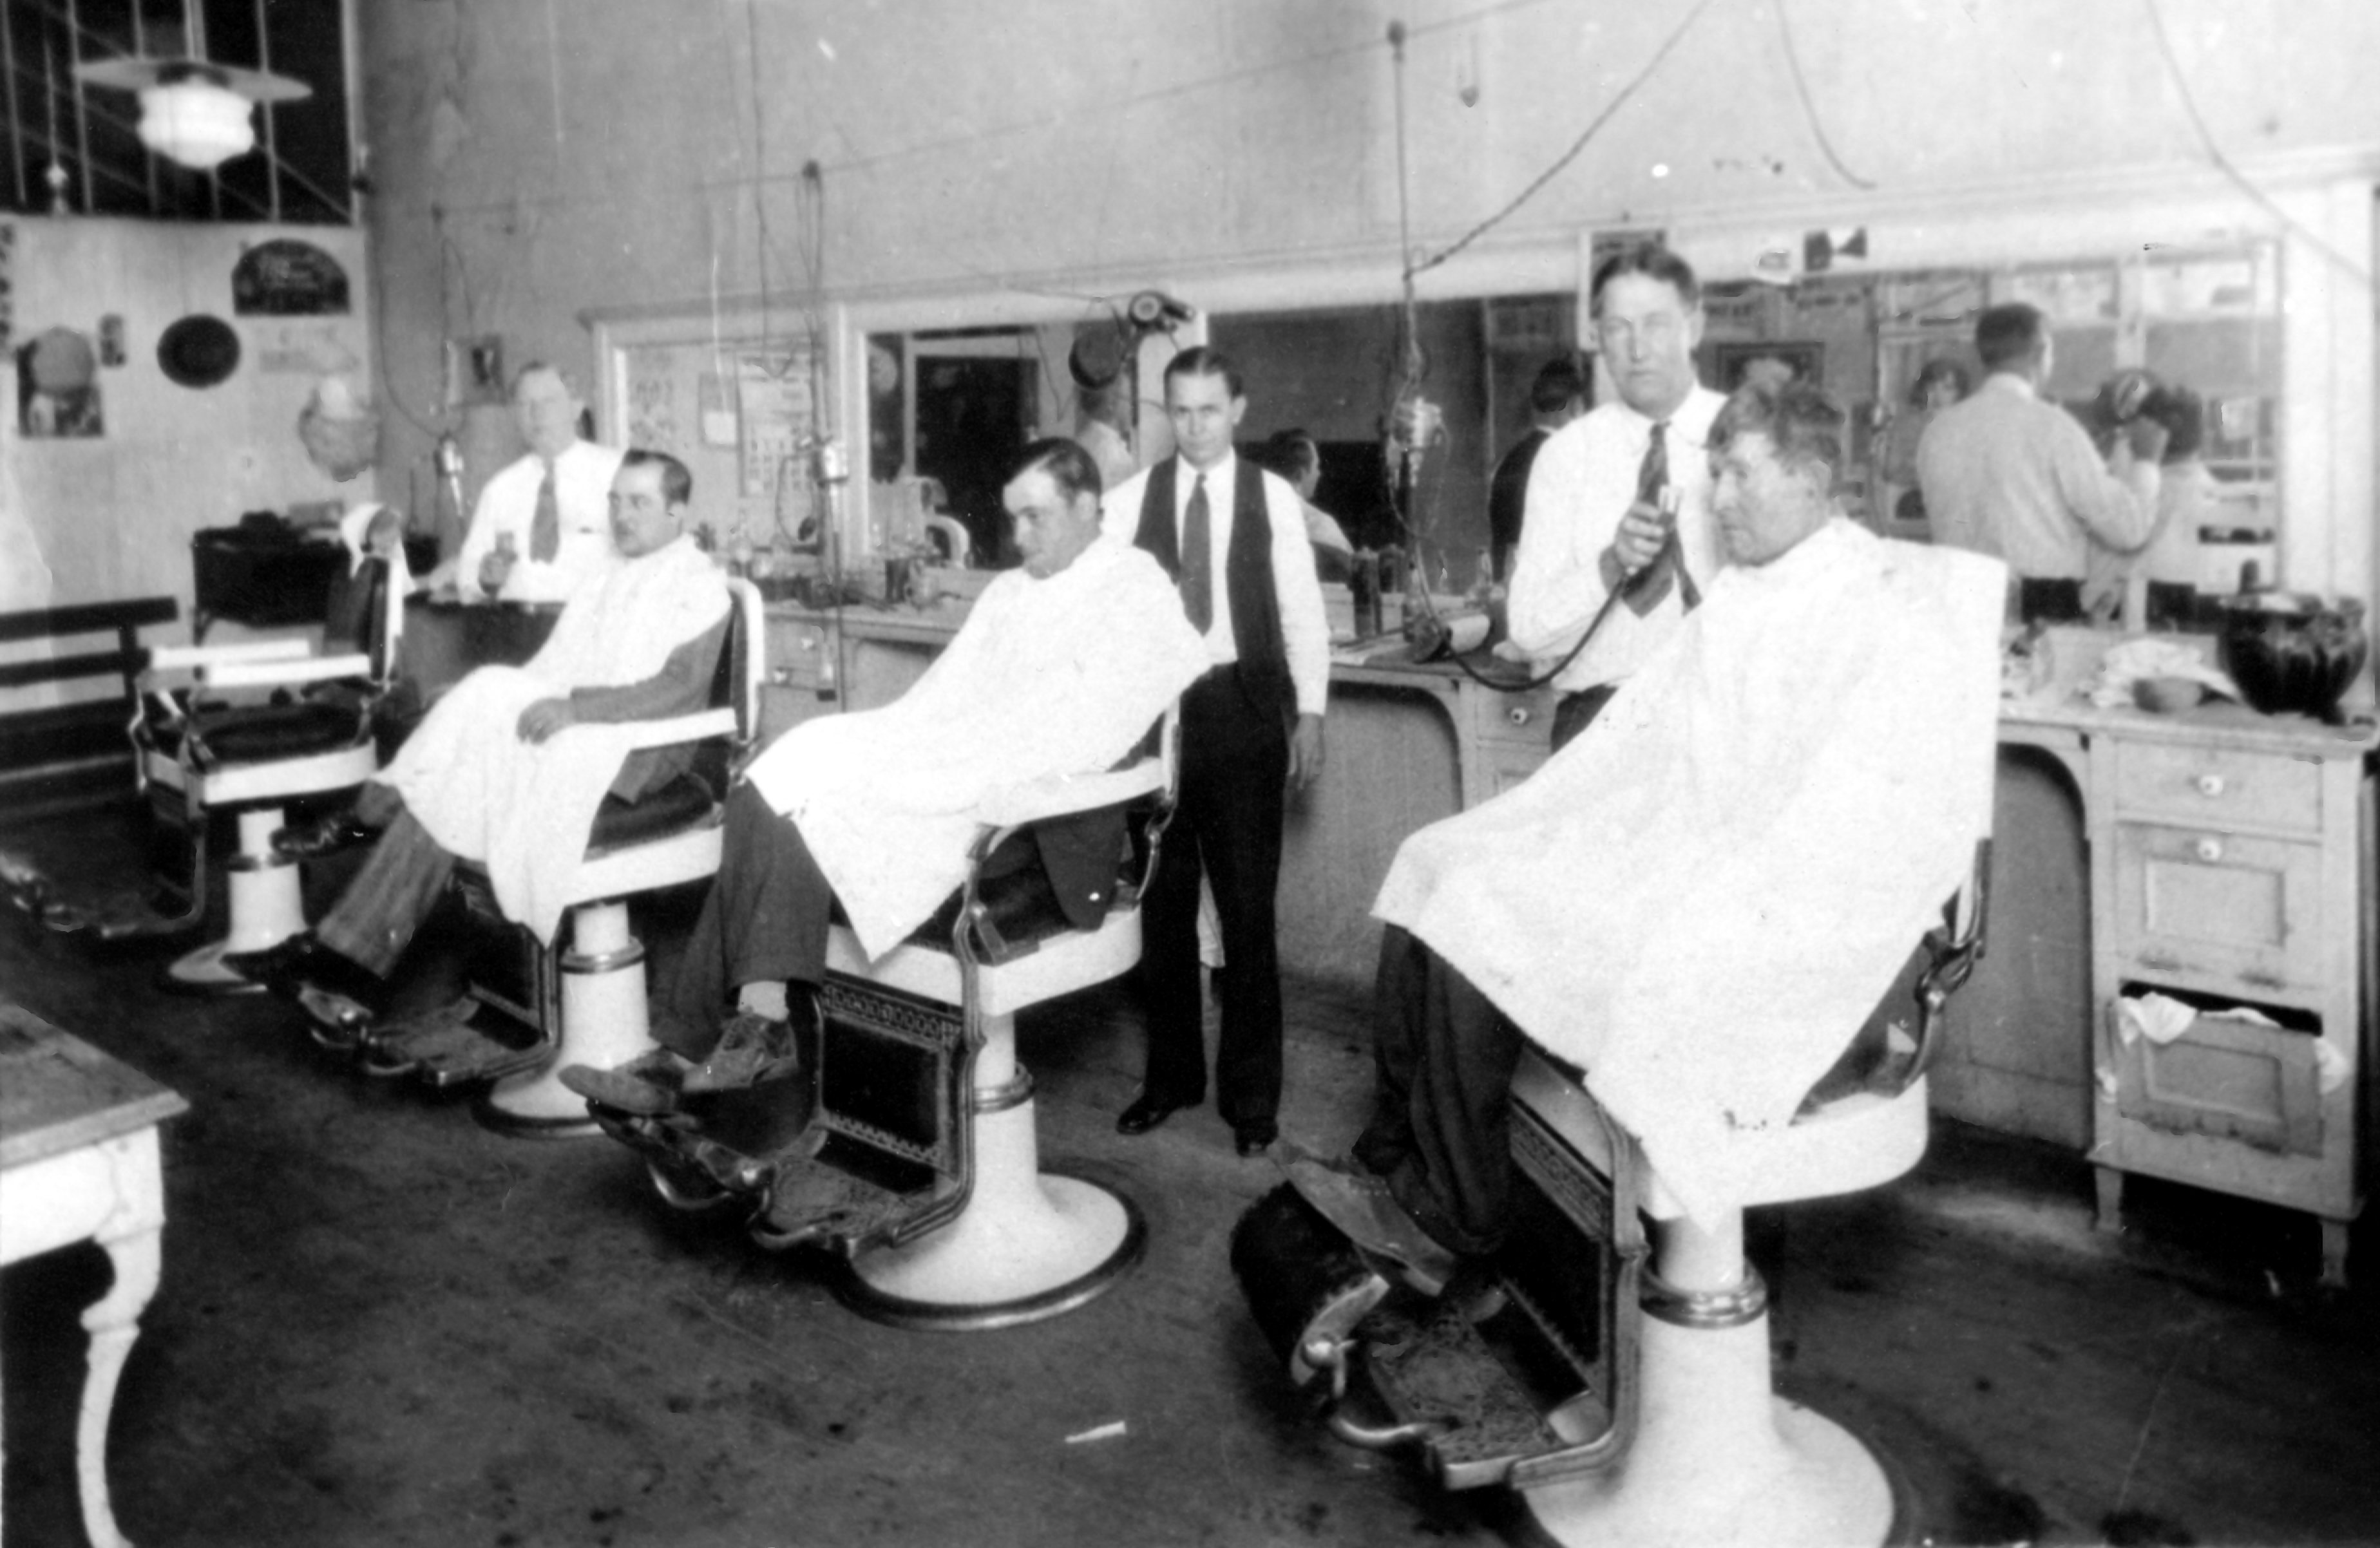 Barber Industry : Fun Fact: Blaylock Barber Shop The Old Firehouse Museum